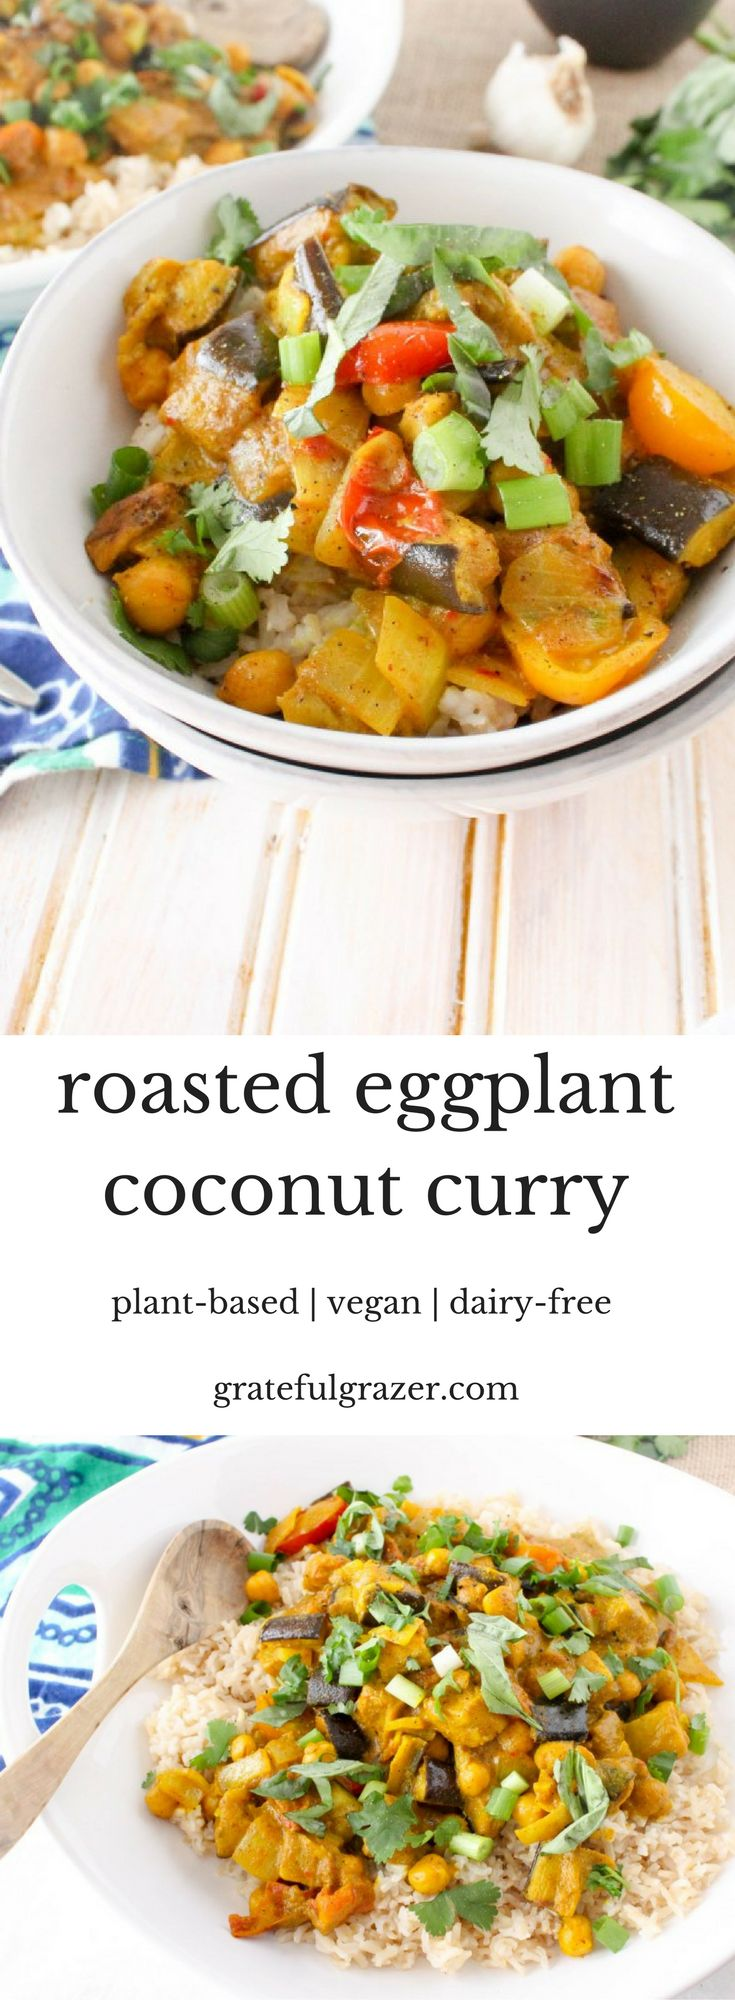 Homemade Roasted Eggplant Coconut Curry is simpler than you might think! Delicious recipe is dairy-free, vegan, plant-based and healthy.   via @gratefulgrazer